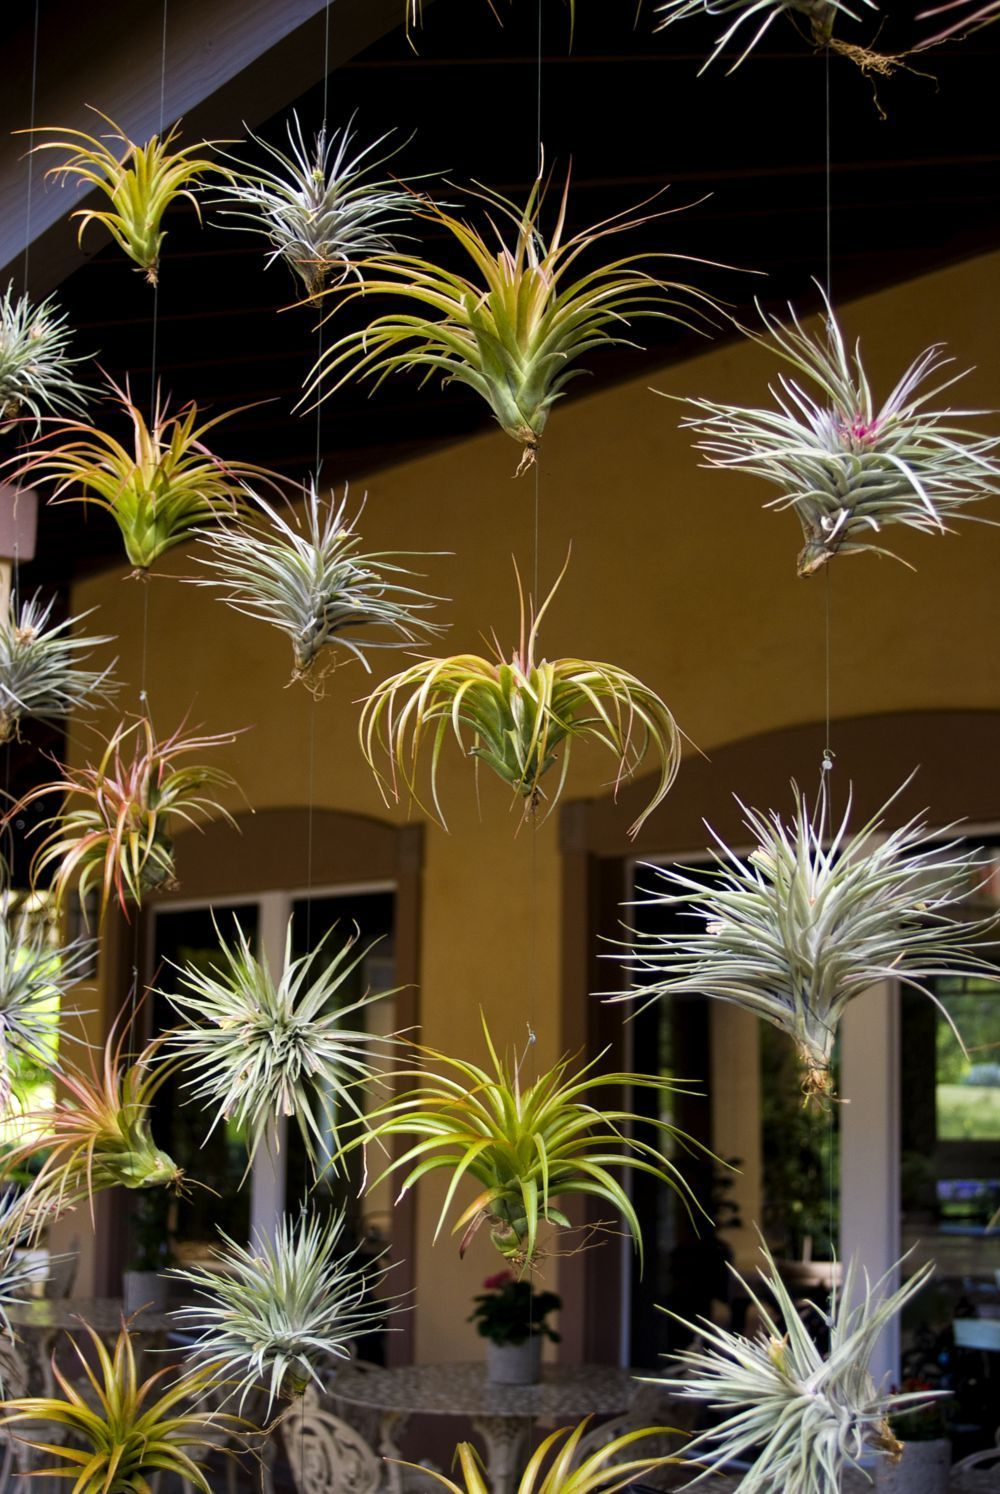 Air plants suspended on fishing line air plants are a